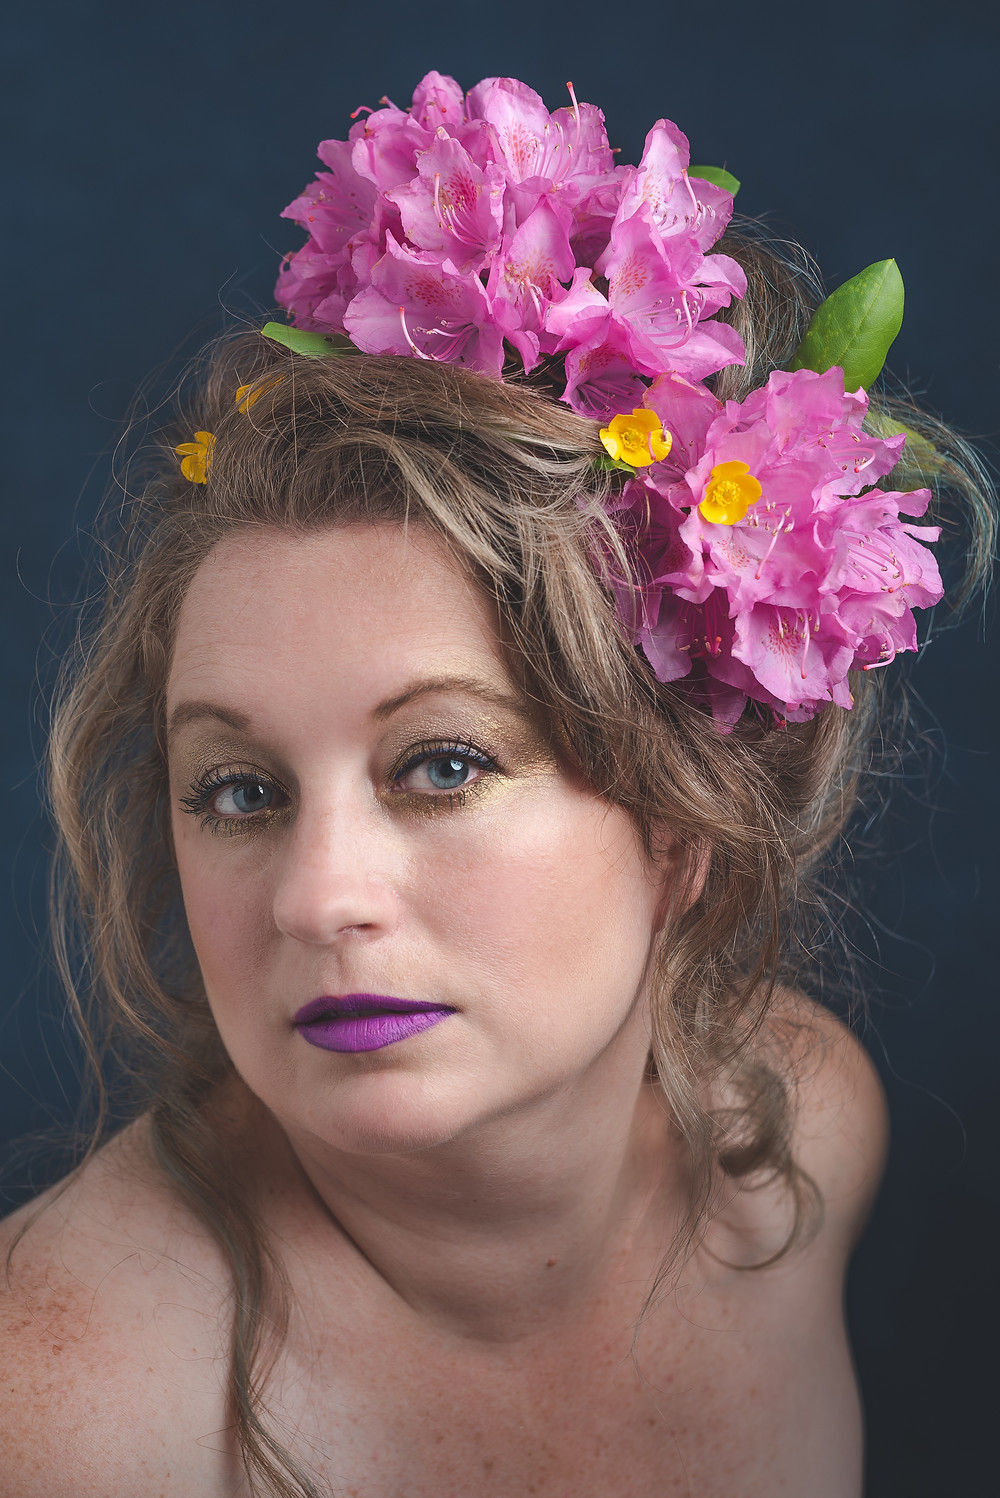 A woman in her 40's takes a color self portrait with rhododendrons in her hair looking straight into camera.